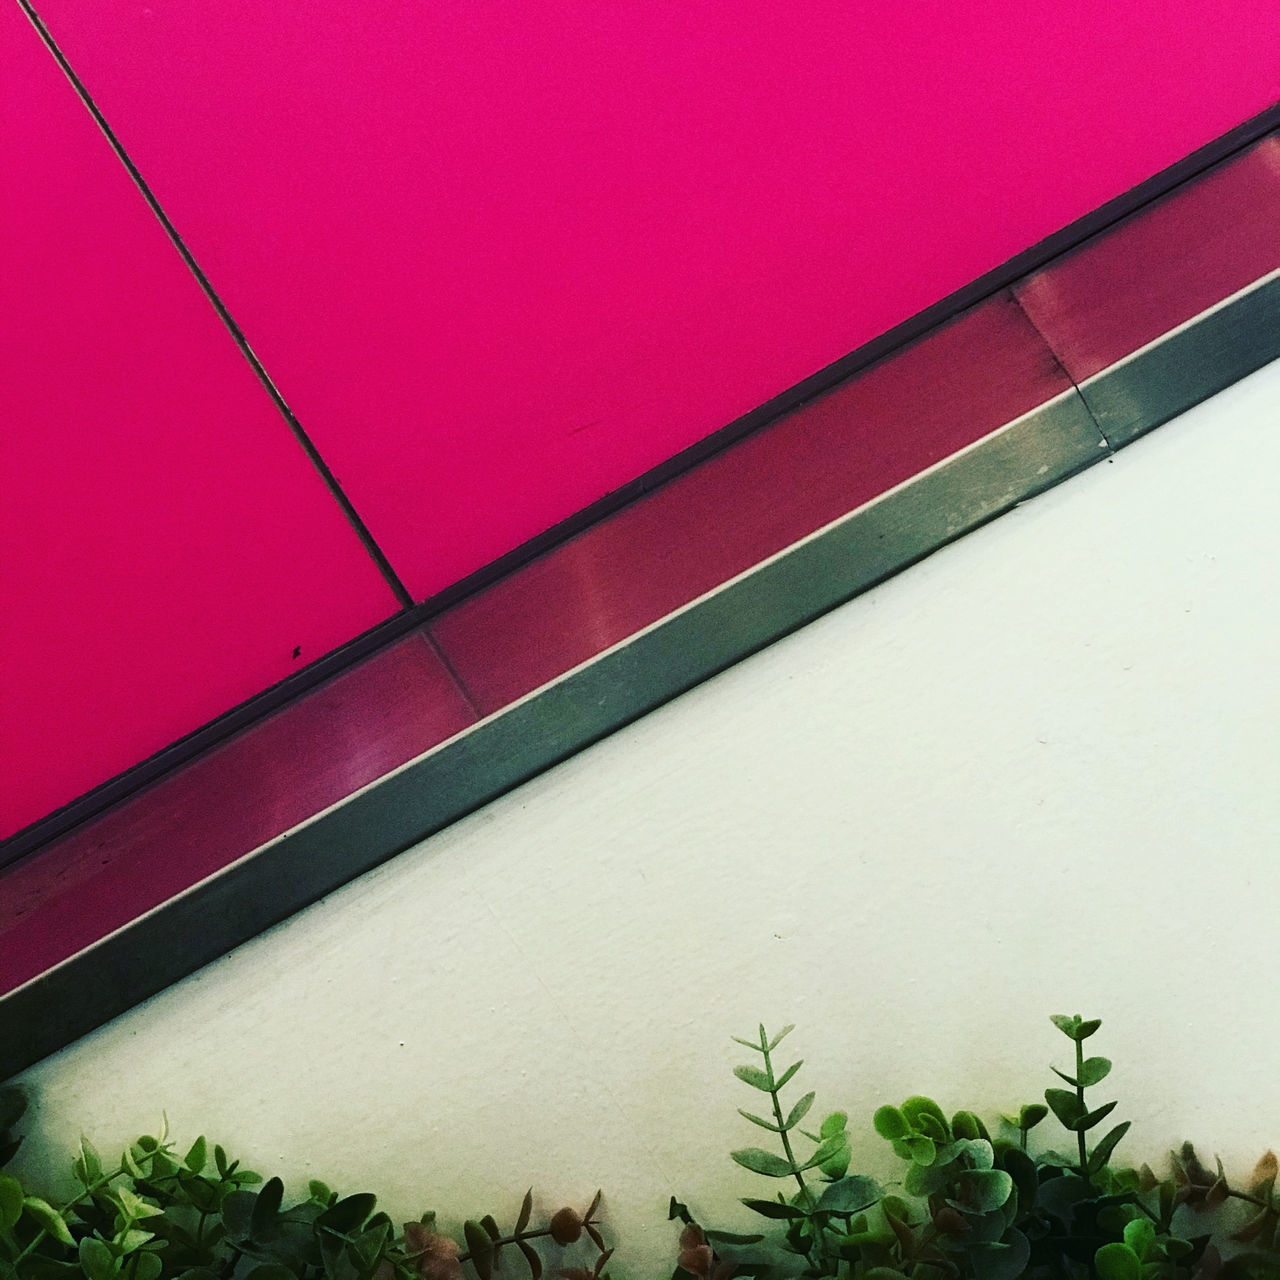 CLOSE-UP OF PINK WALL AND BUILDING